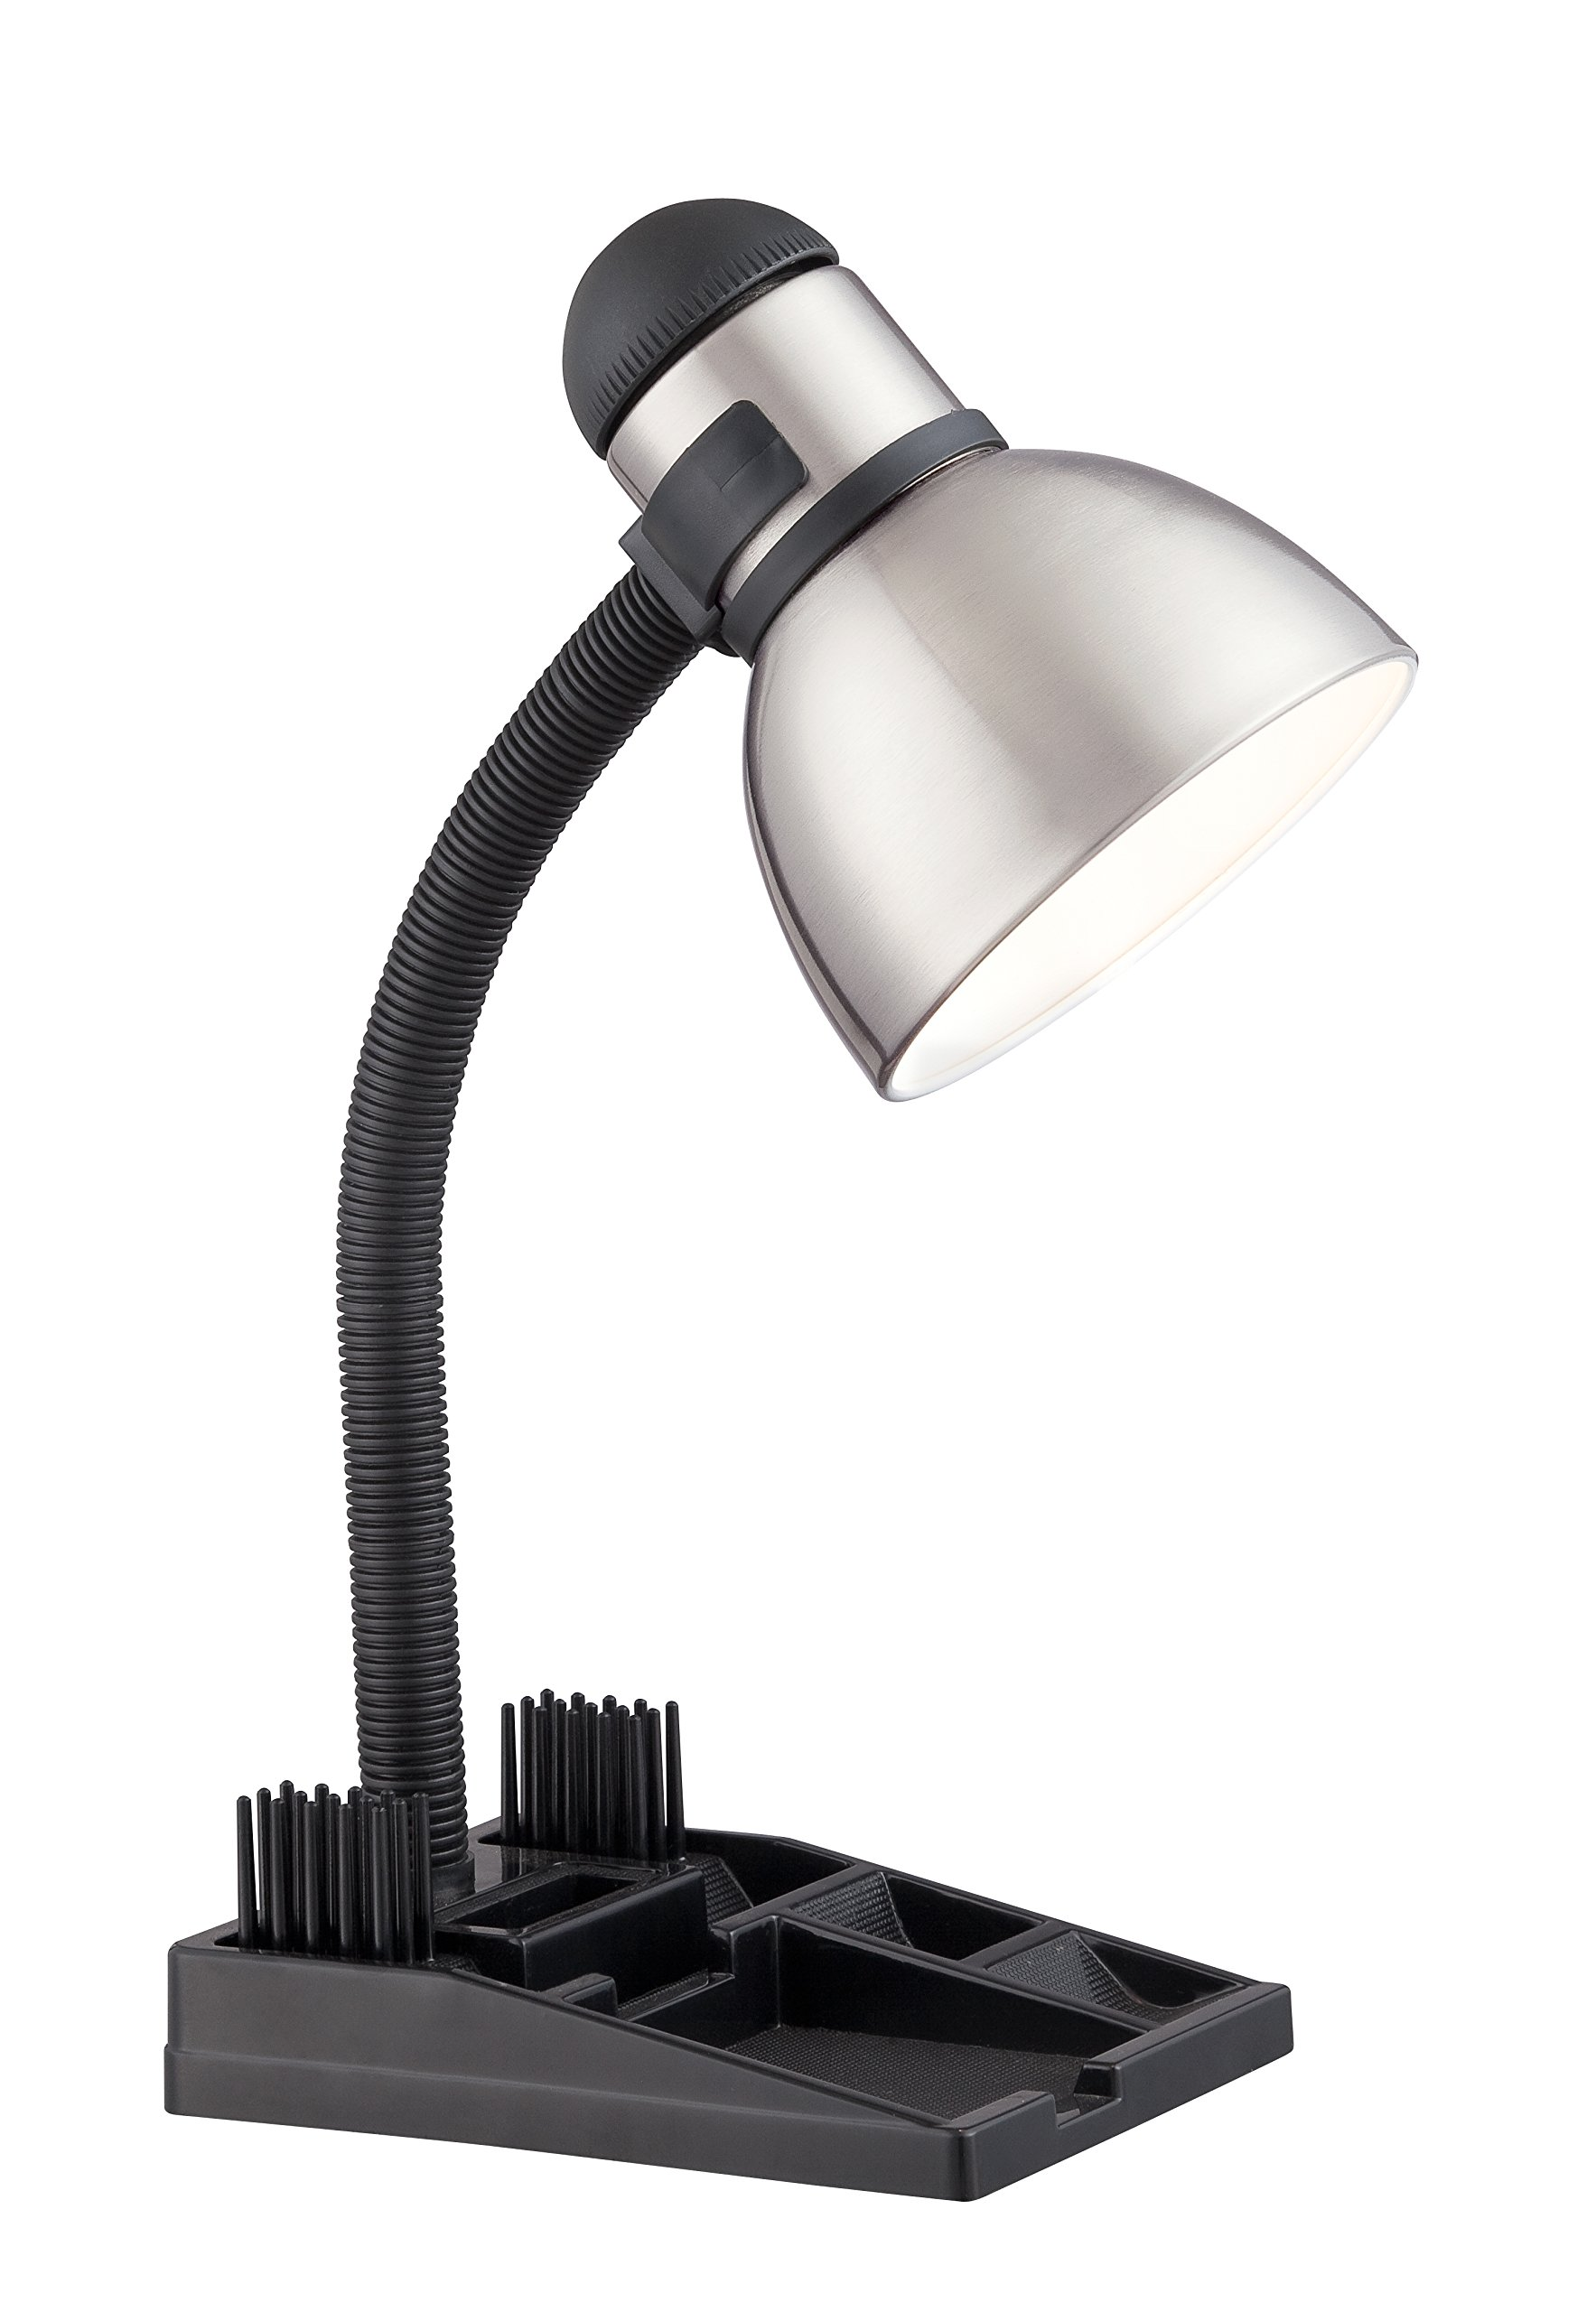 Satco 57/056 Gooseneck Desk Organizer Lamp with 13-watt GU24 2700K Mini Spiral, 20'' x 20'' x 20'', Steel/Black